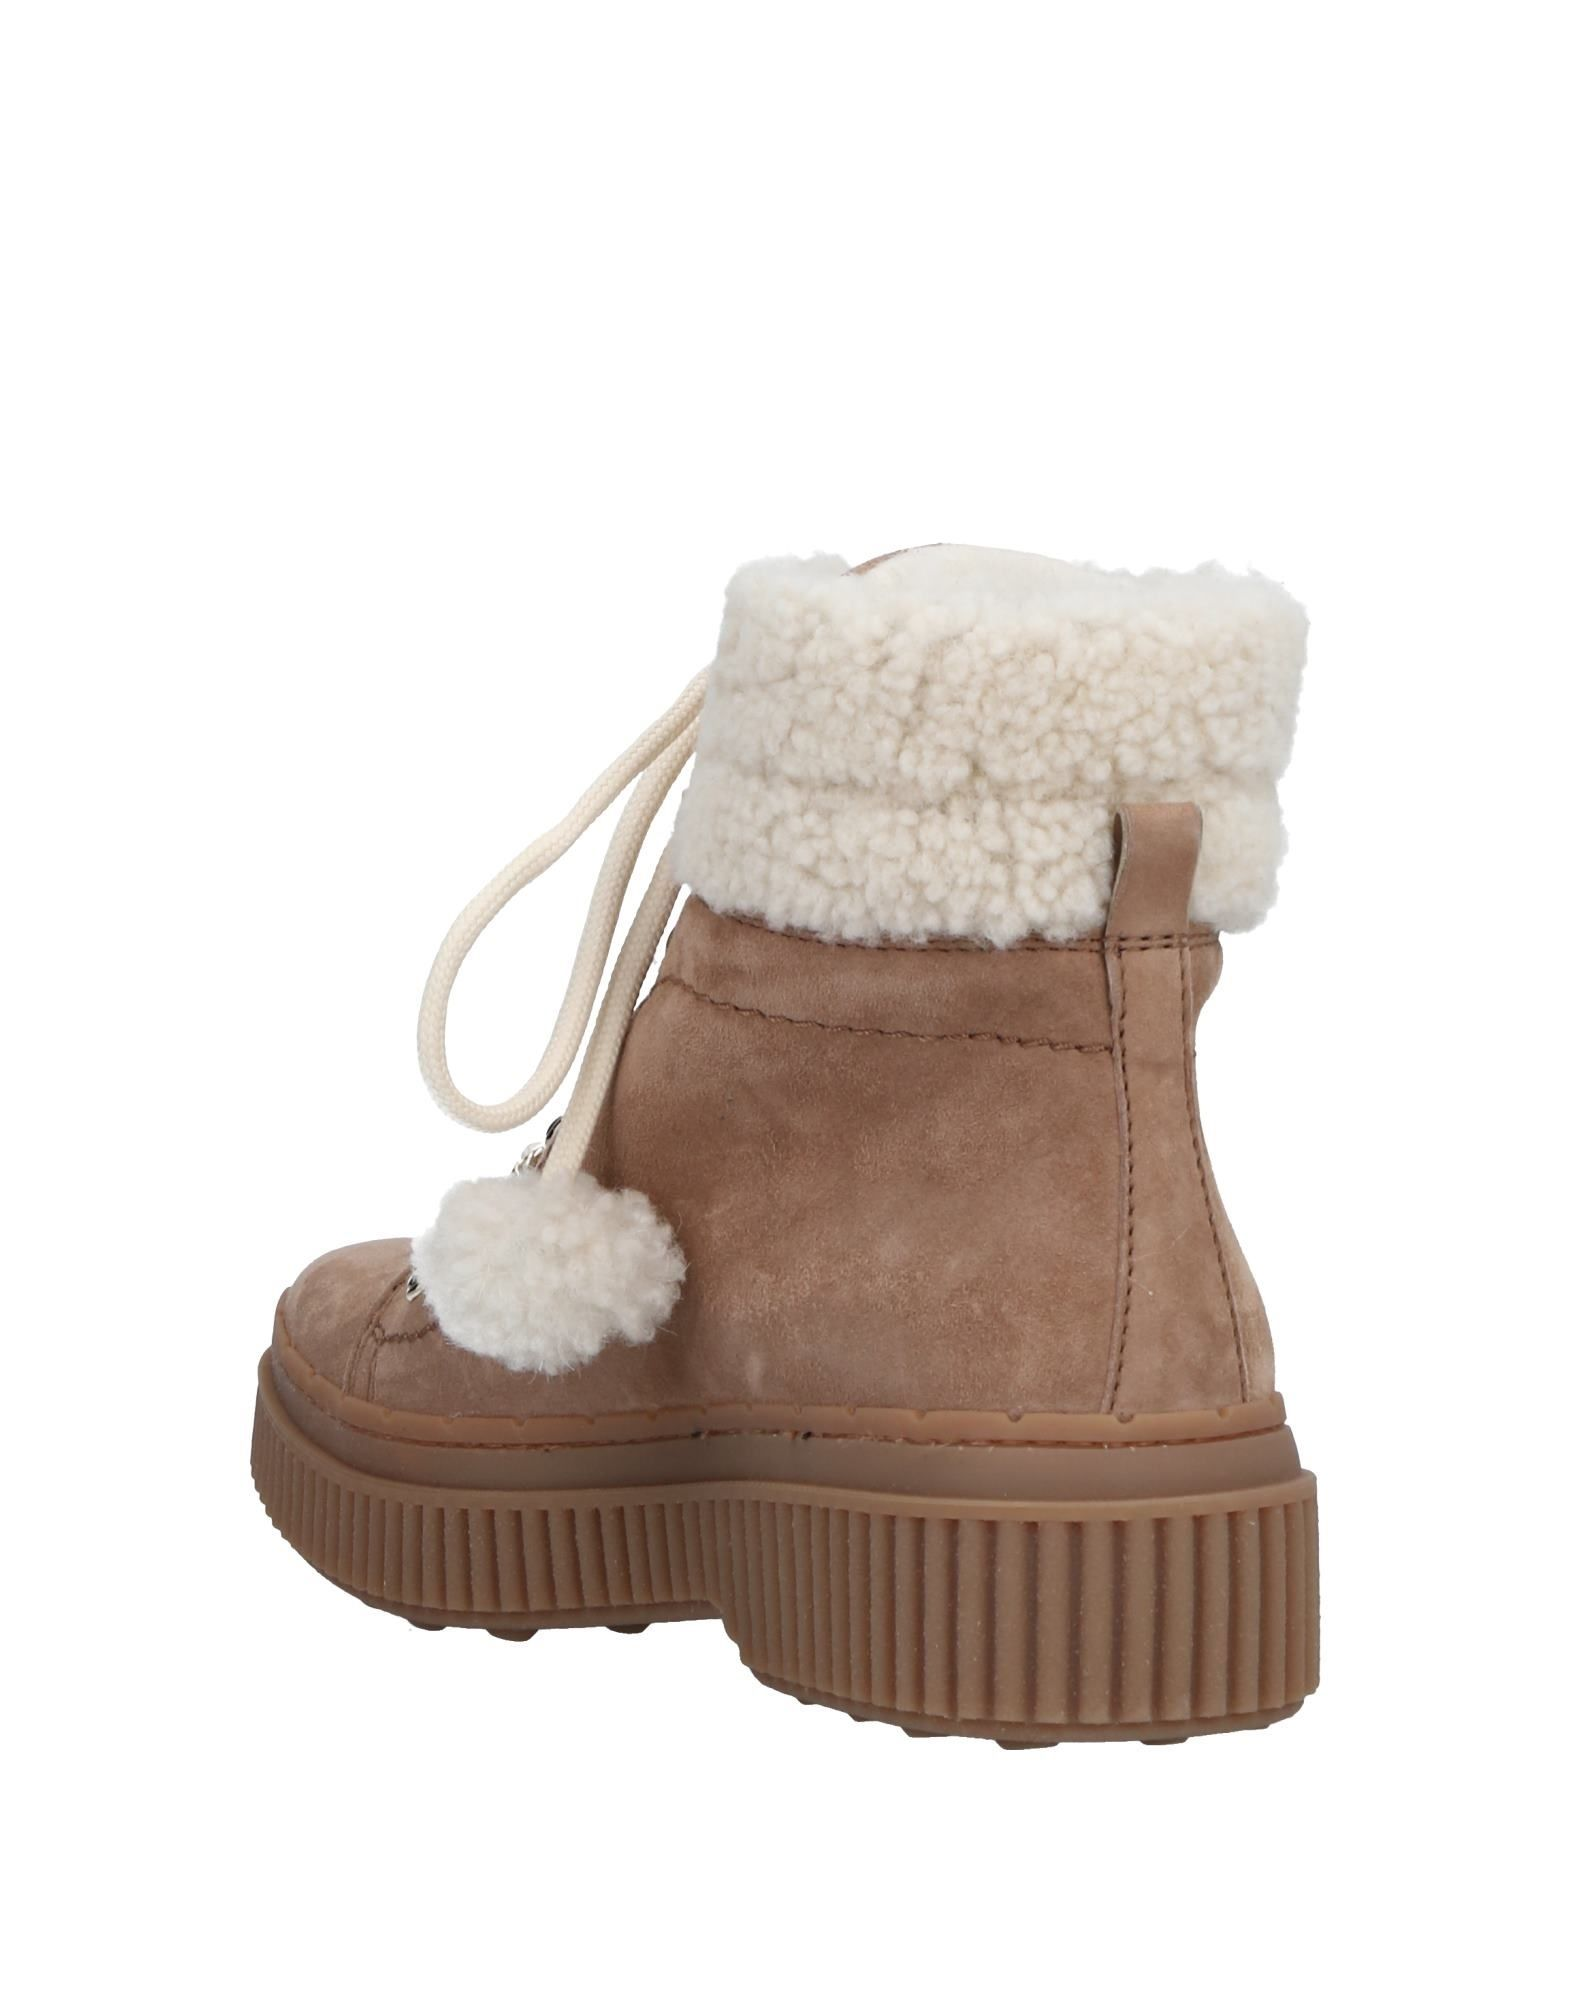 Tod's Khaki Suede Shearling Boots